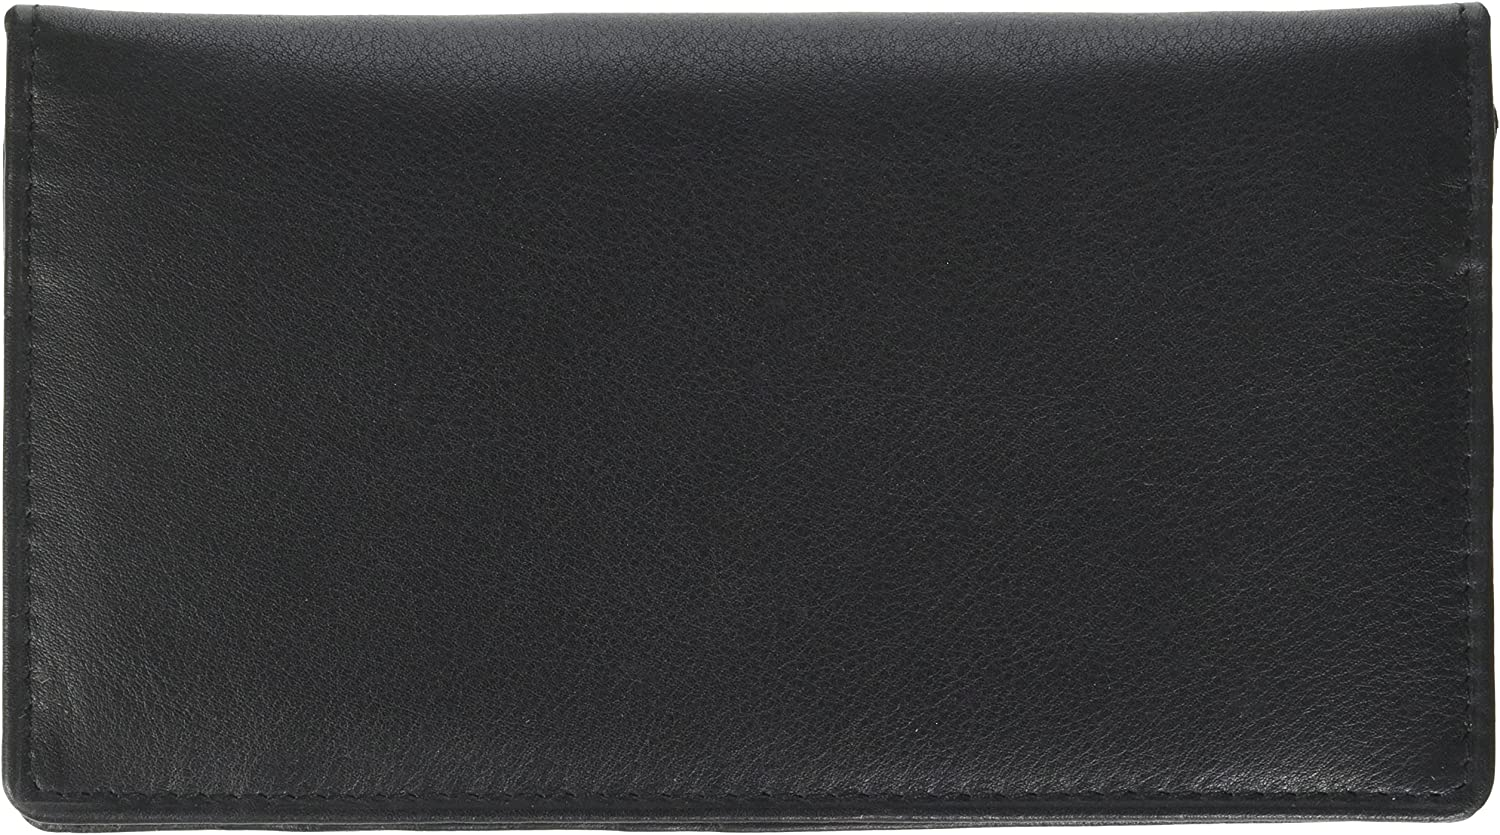 Siskiyou NHL Genuine Leather Deluxe Checkbook Cover